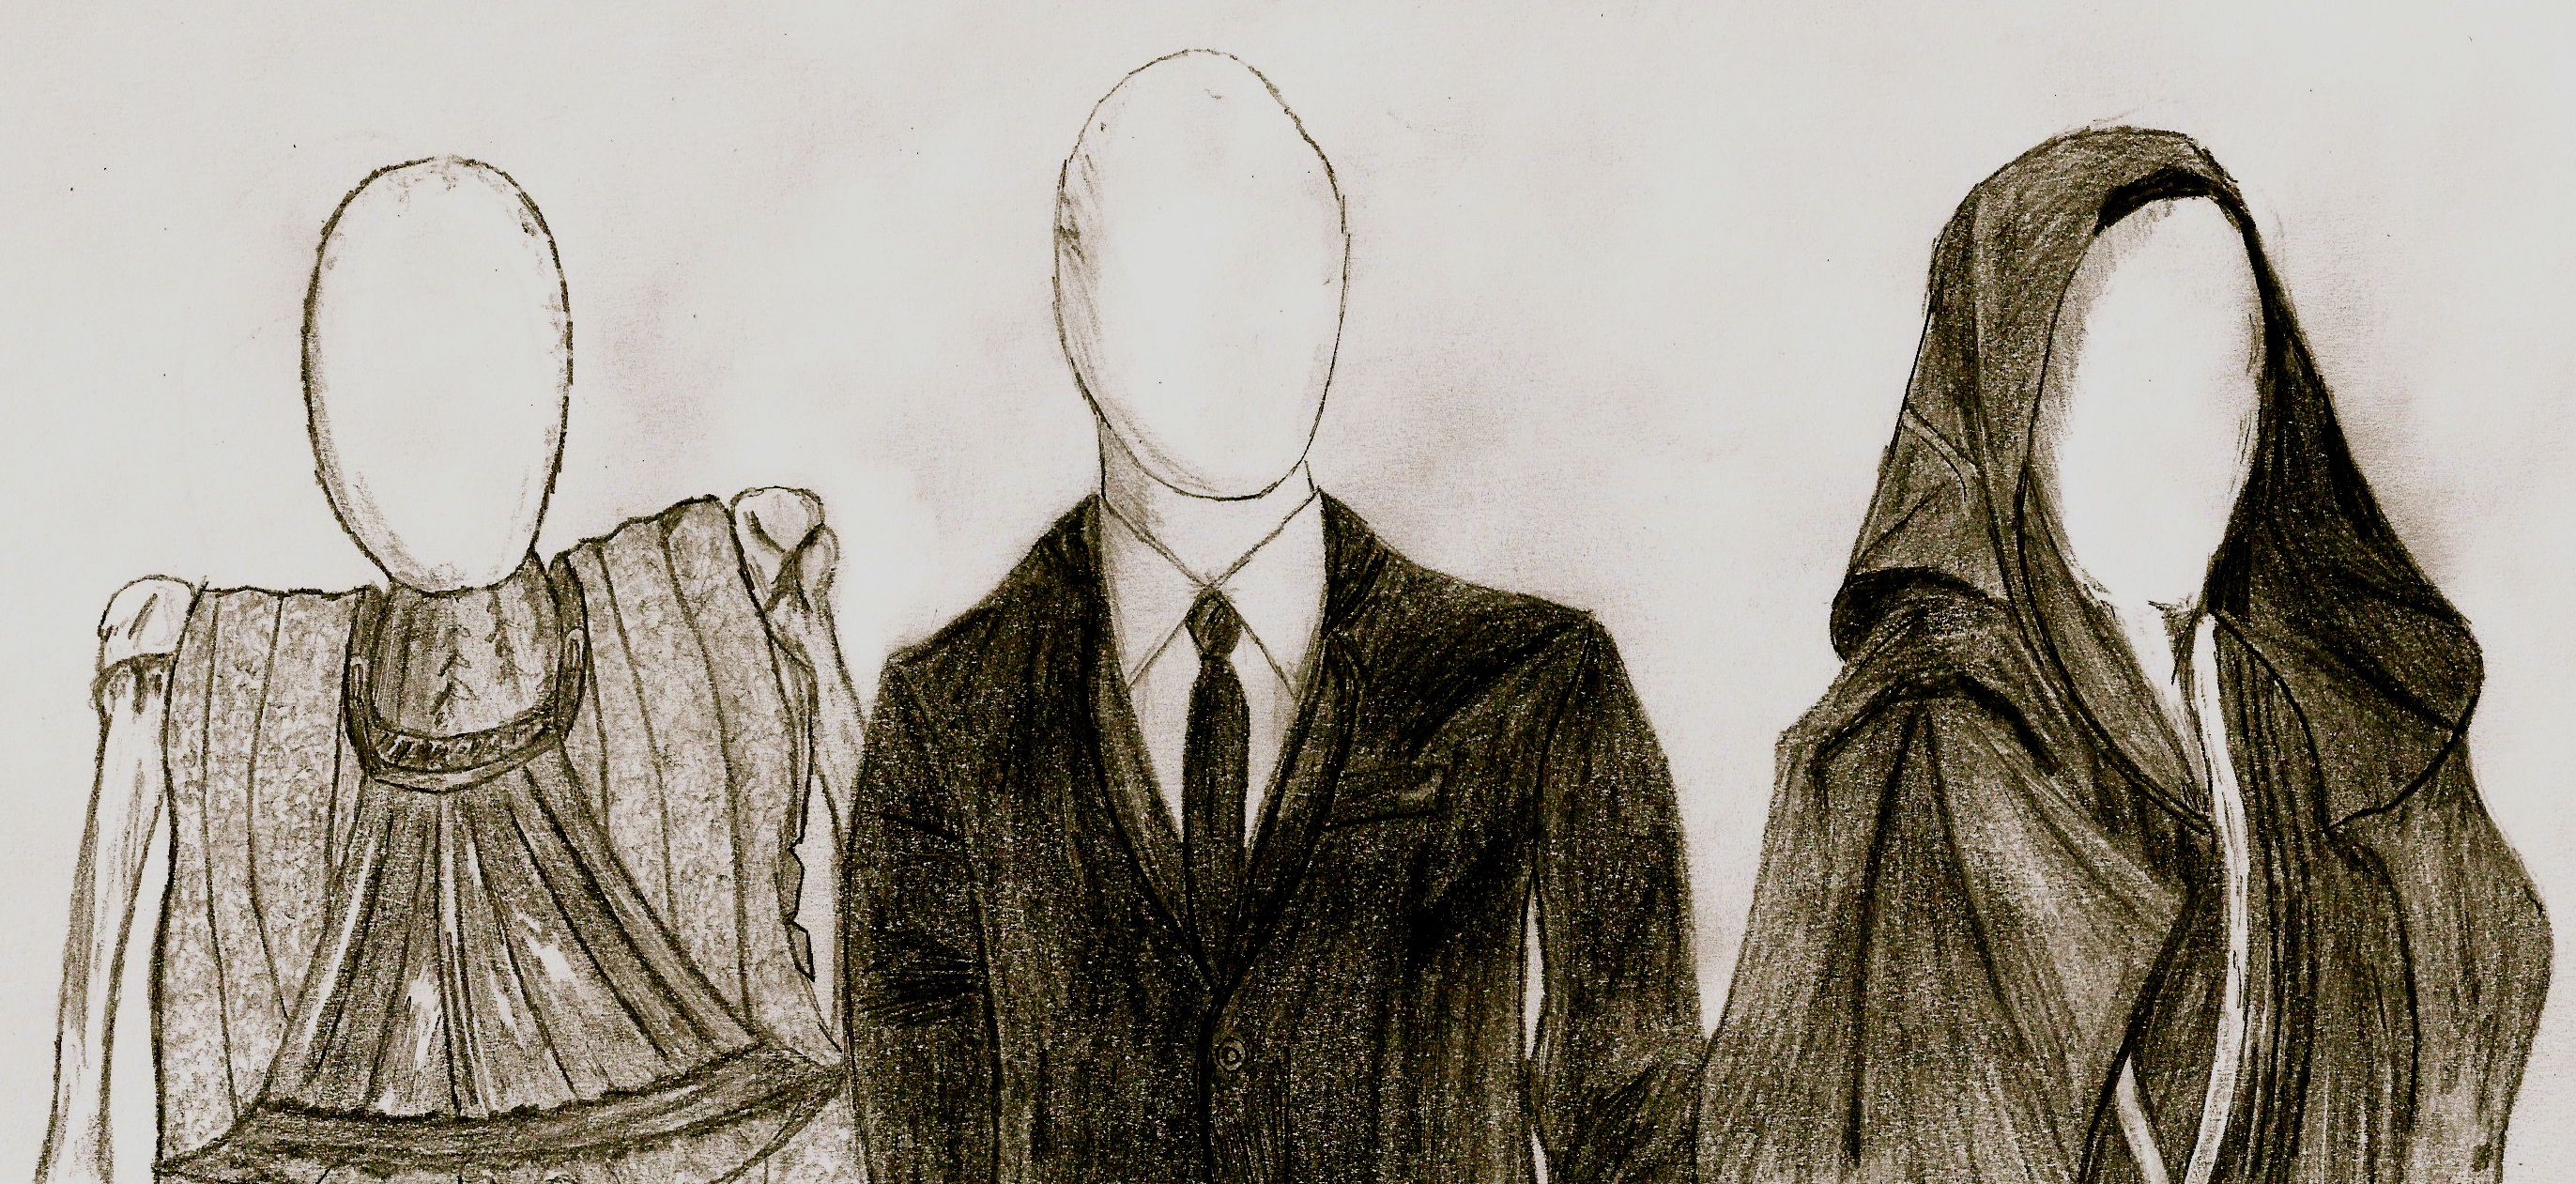 http://img1.wikia.nocookie.net/__cb20121010215952/theslenderman/images/f/fd/Slenderman_Through_the_Ages.jpg